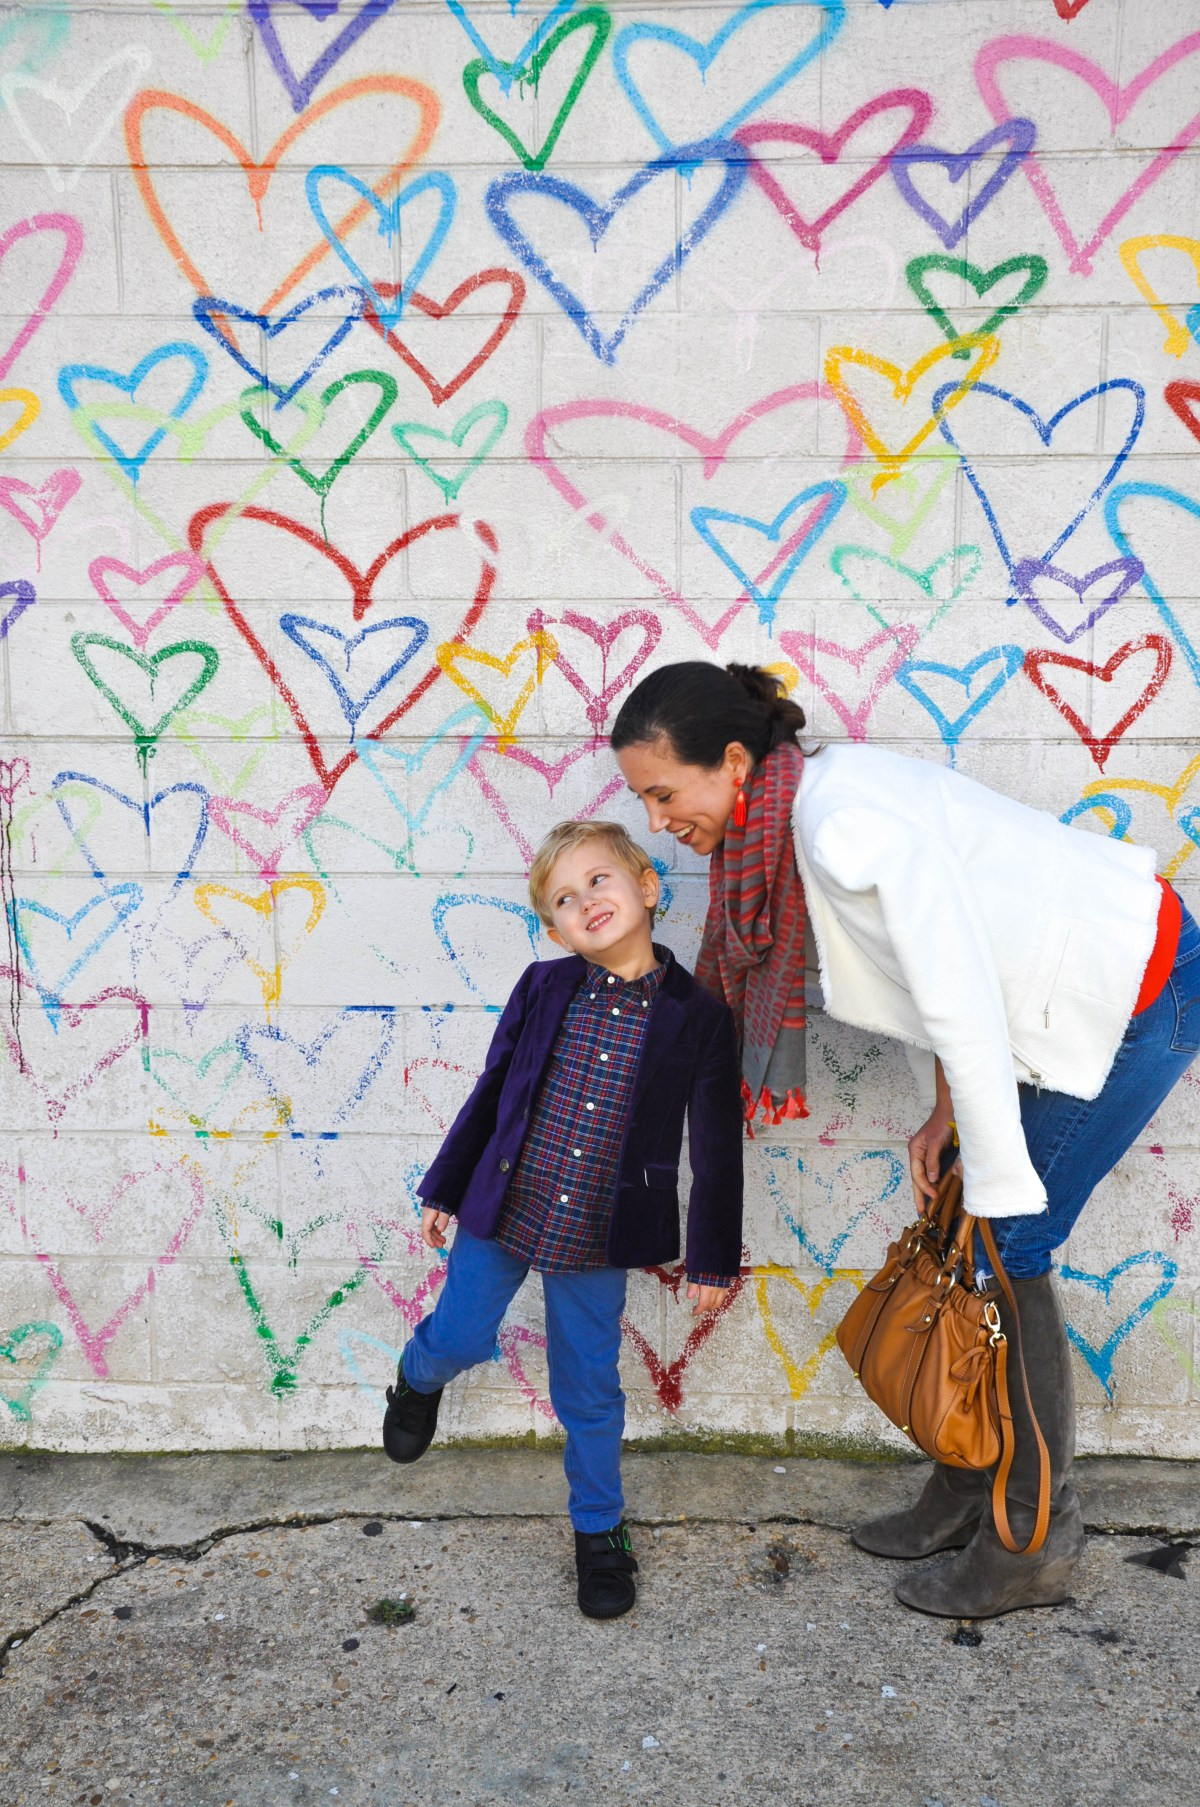 A mother and her young son pose before a DC area mural composed of the outlines of multi-colored hearts.